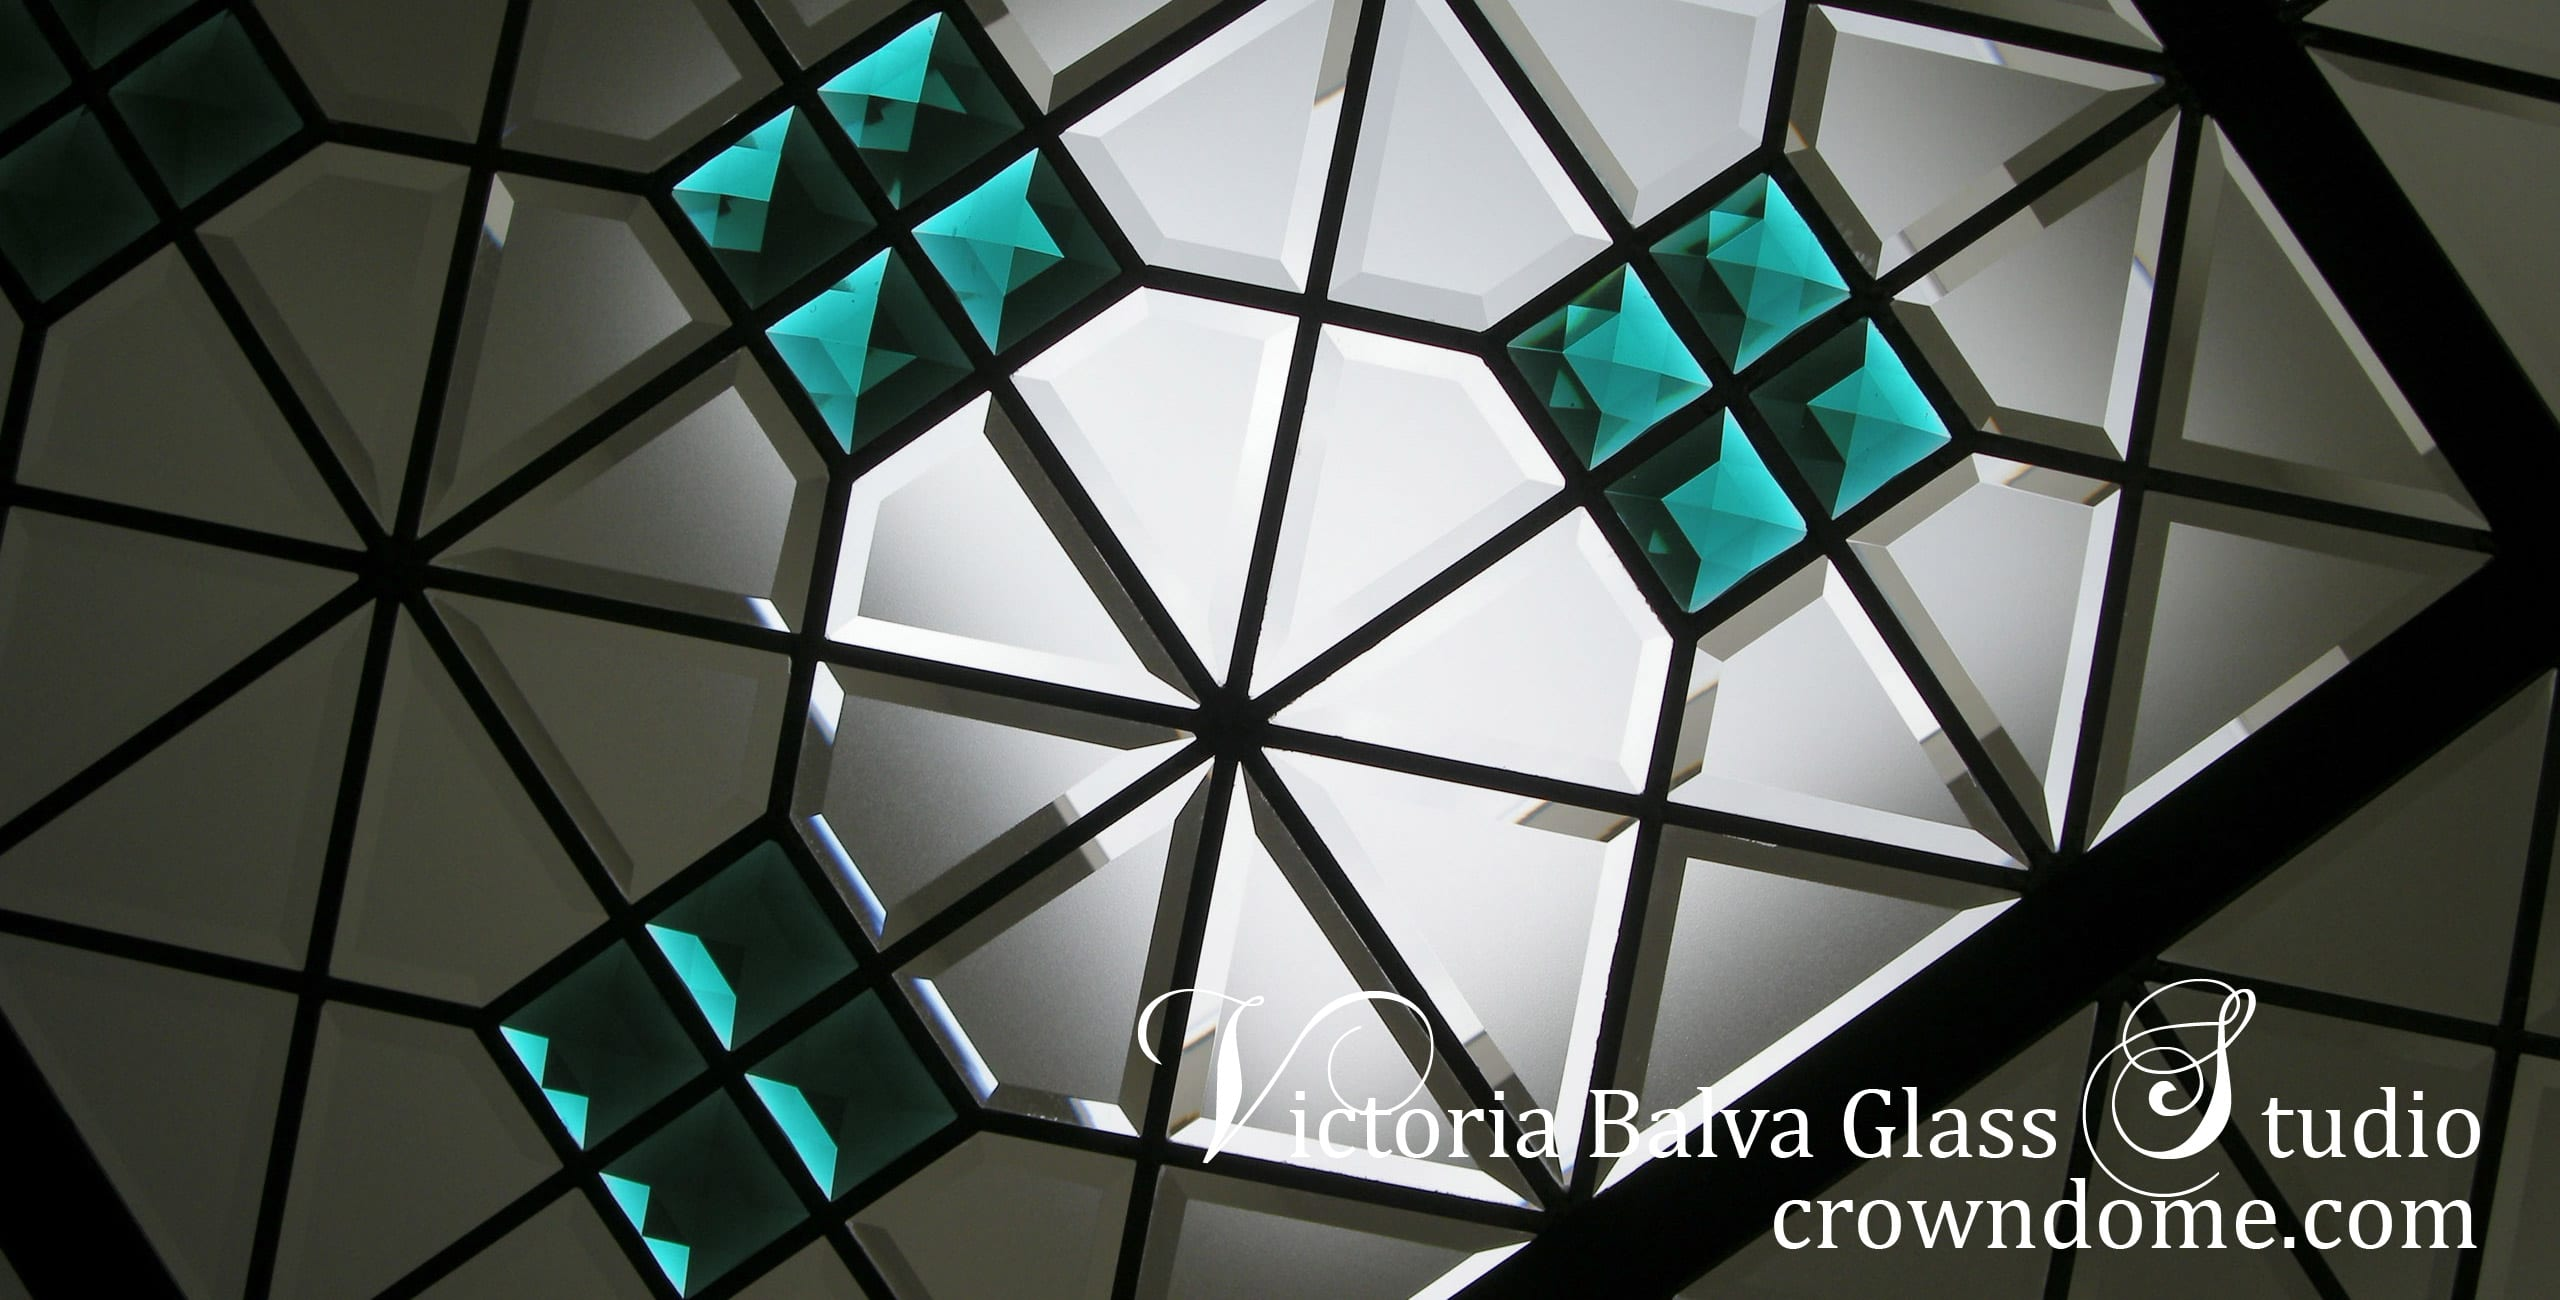 Eye-catching stained beveled leaded glass skylight ceiling with emerald accent jewels and colored beveled glass for a bathroom of a custom built luxury residence. Simple geometric stained leaded glass design with custom beveled glass and large emerald jewels by glass artist Victoria Balva